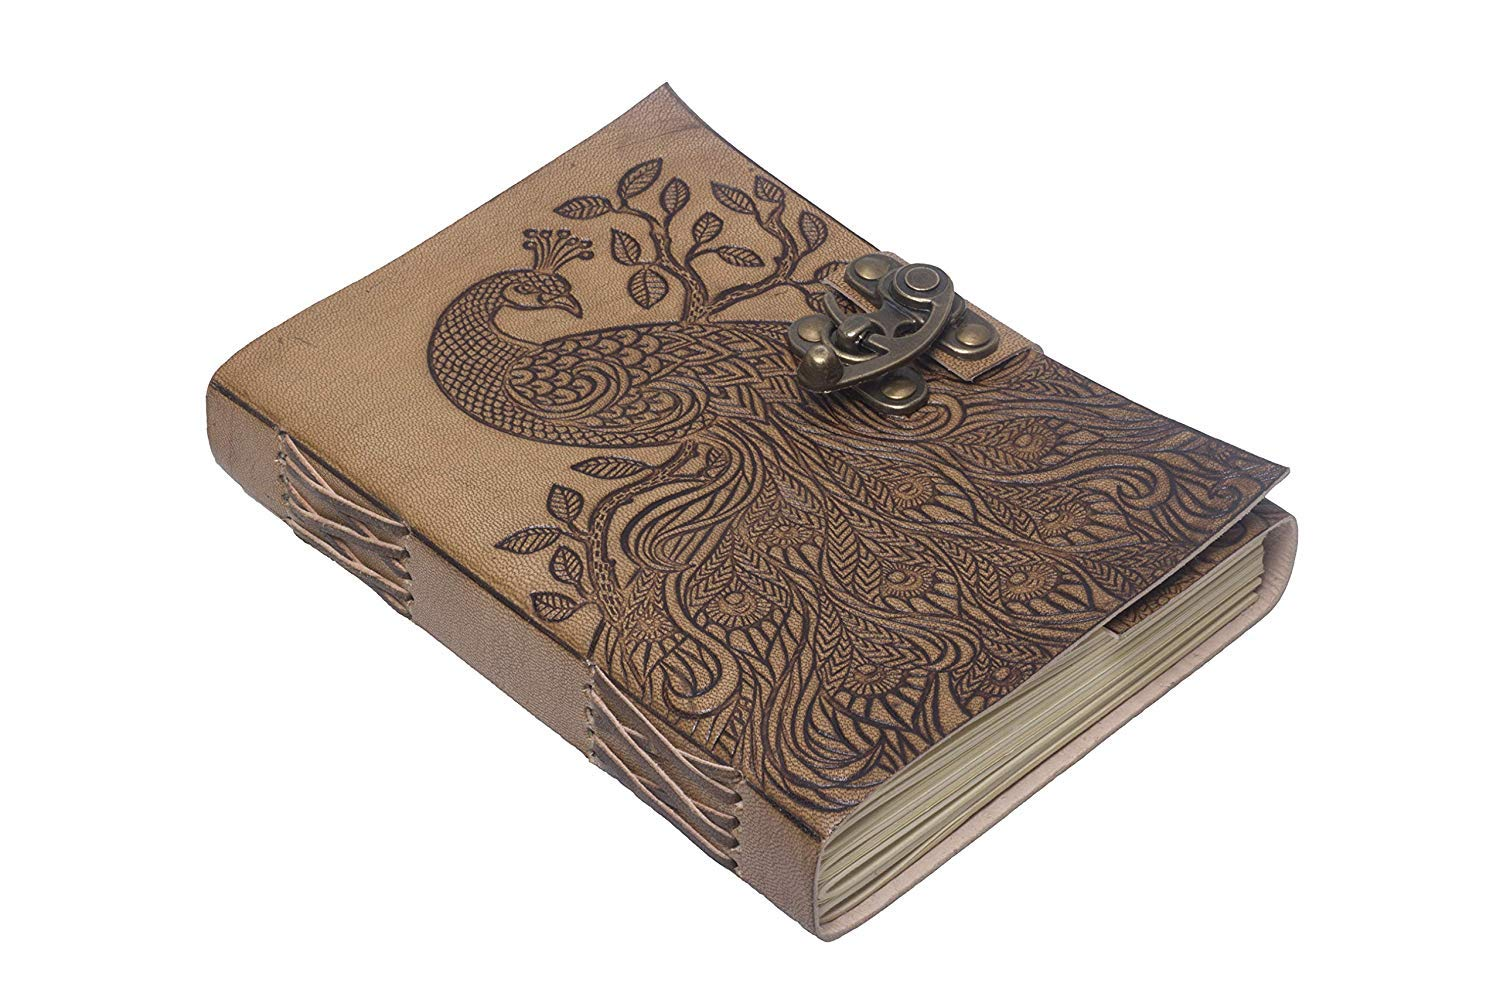 RjKart Leather Peacock Embossed C-Lock Diary Brown 5x7 Inch Birthday for Men Woman Boy Friend Girl Friend Husband Wife Brother Sister Father Mother[Dairy Diary Notebooks For Office College school Diaries Men Women Doodle Journal Notebook Bullet Journals Note Book Notepad Bag Pocket Sketchbook Planner Personal Daily Diaires Students Notepads Writing Sketch Stationary Stationery Accessories Spiral Ruled Stylish Gifts Planners With Lock ] (B07PBVHNHC) Amazon Price History, Amazon Price Tracker